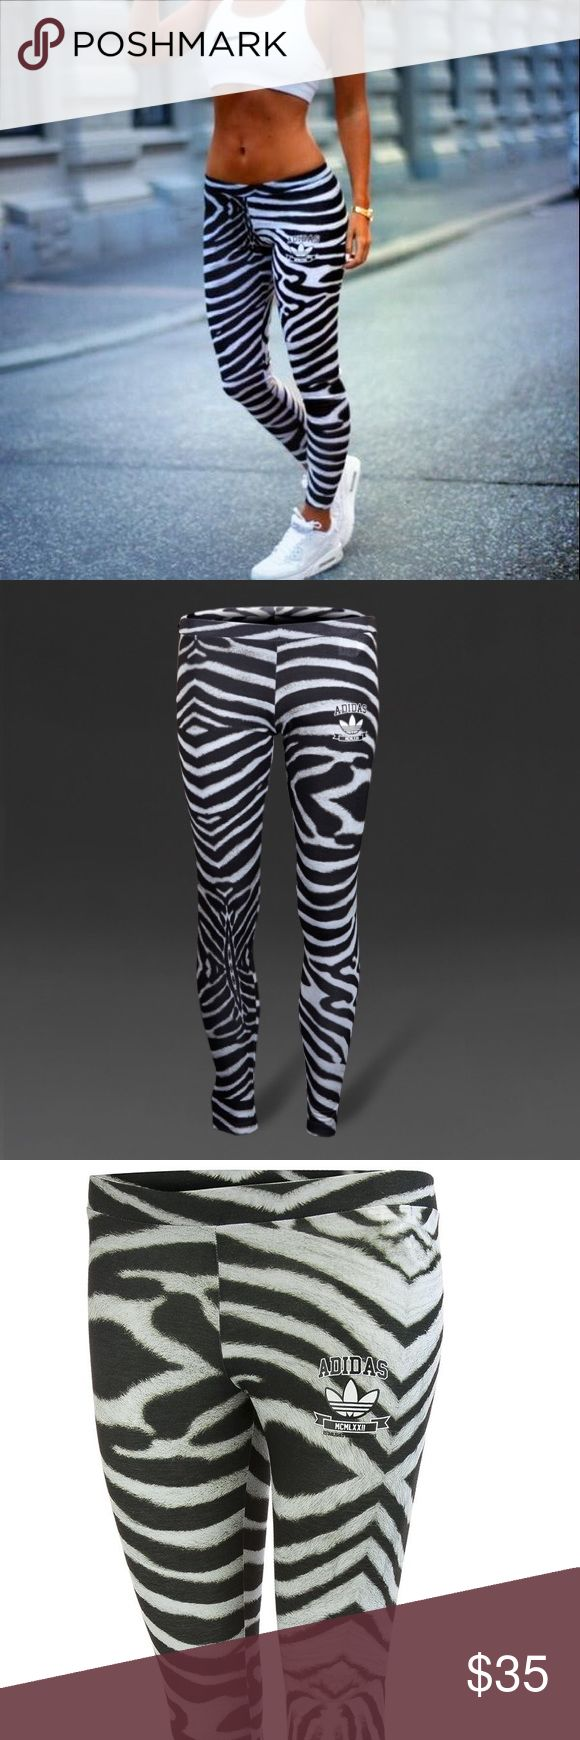 Classic Adidas Zebra Leggings Original Trefoil Classic Adidas - Zebra Leggings  Original Trefoil Design. Super Cute Black & White. Women's / Ladies - Size Small S Keywords - Yoga / Casual / 80's Run DMC / Throwback Logo. Gently Worn. No Flaws.   Please FOLLOW ME & check out the other items in my closet. BUNDLE & SAVE!! I offer a discount when items are bundled & you only pay shipping one time!! Thank you and Happy Poshing! adidas Pants Leggings